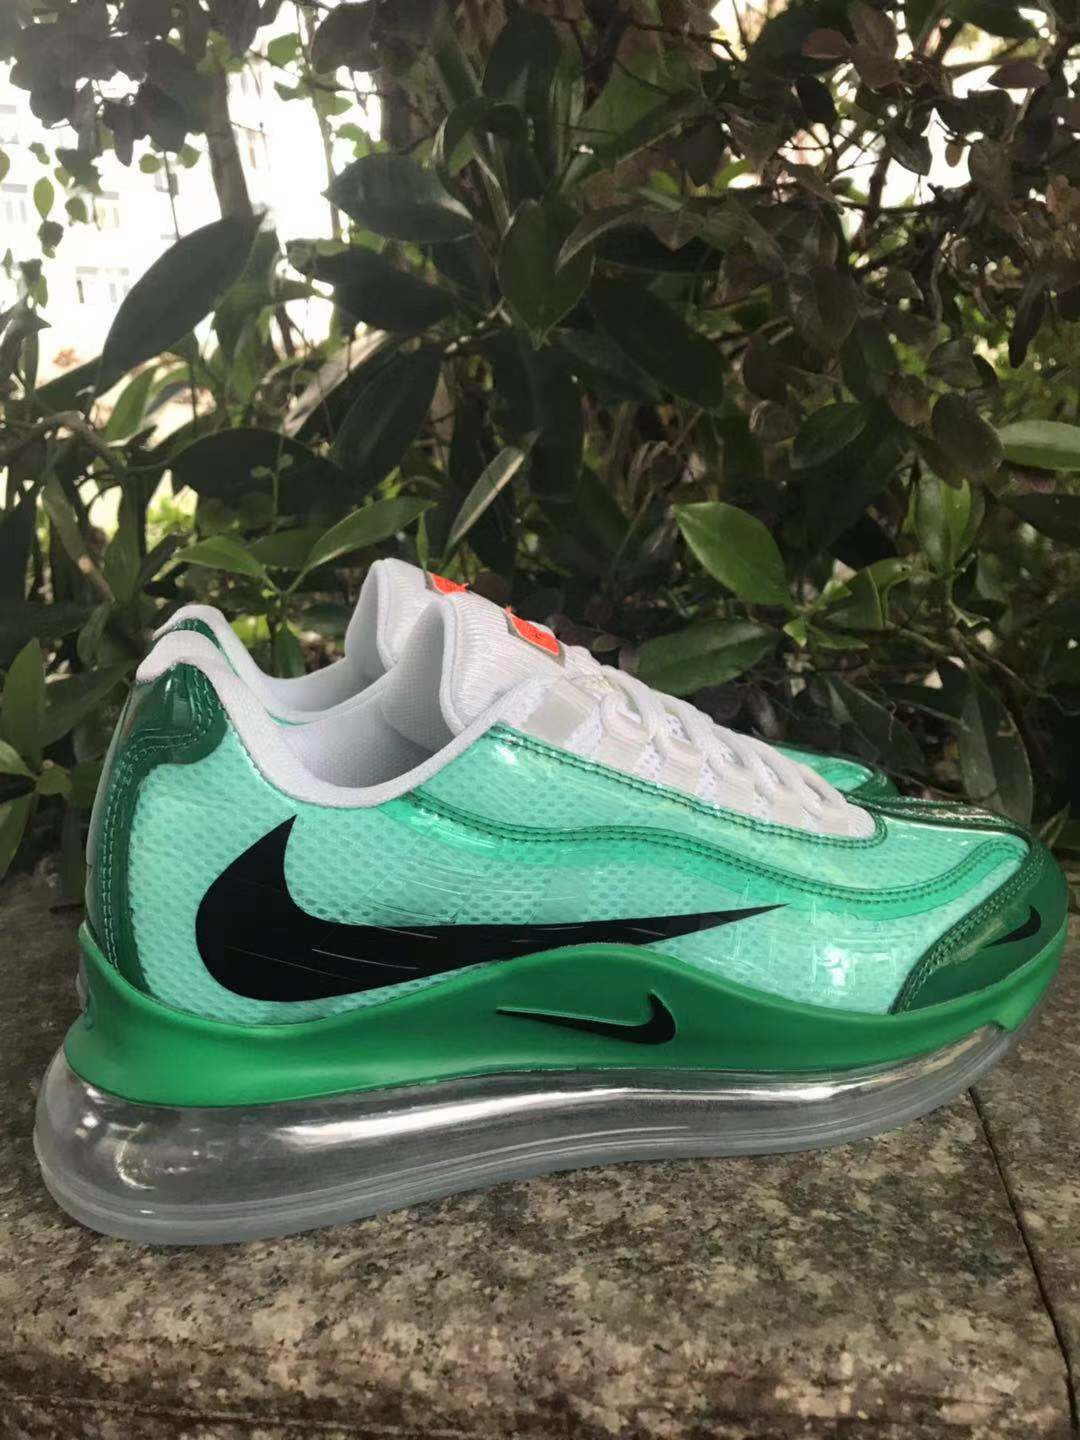 2020 Women Nike Air Max 720 95 Green Black